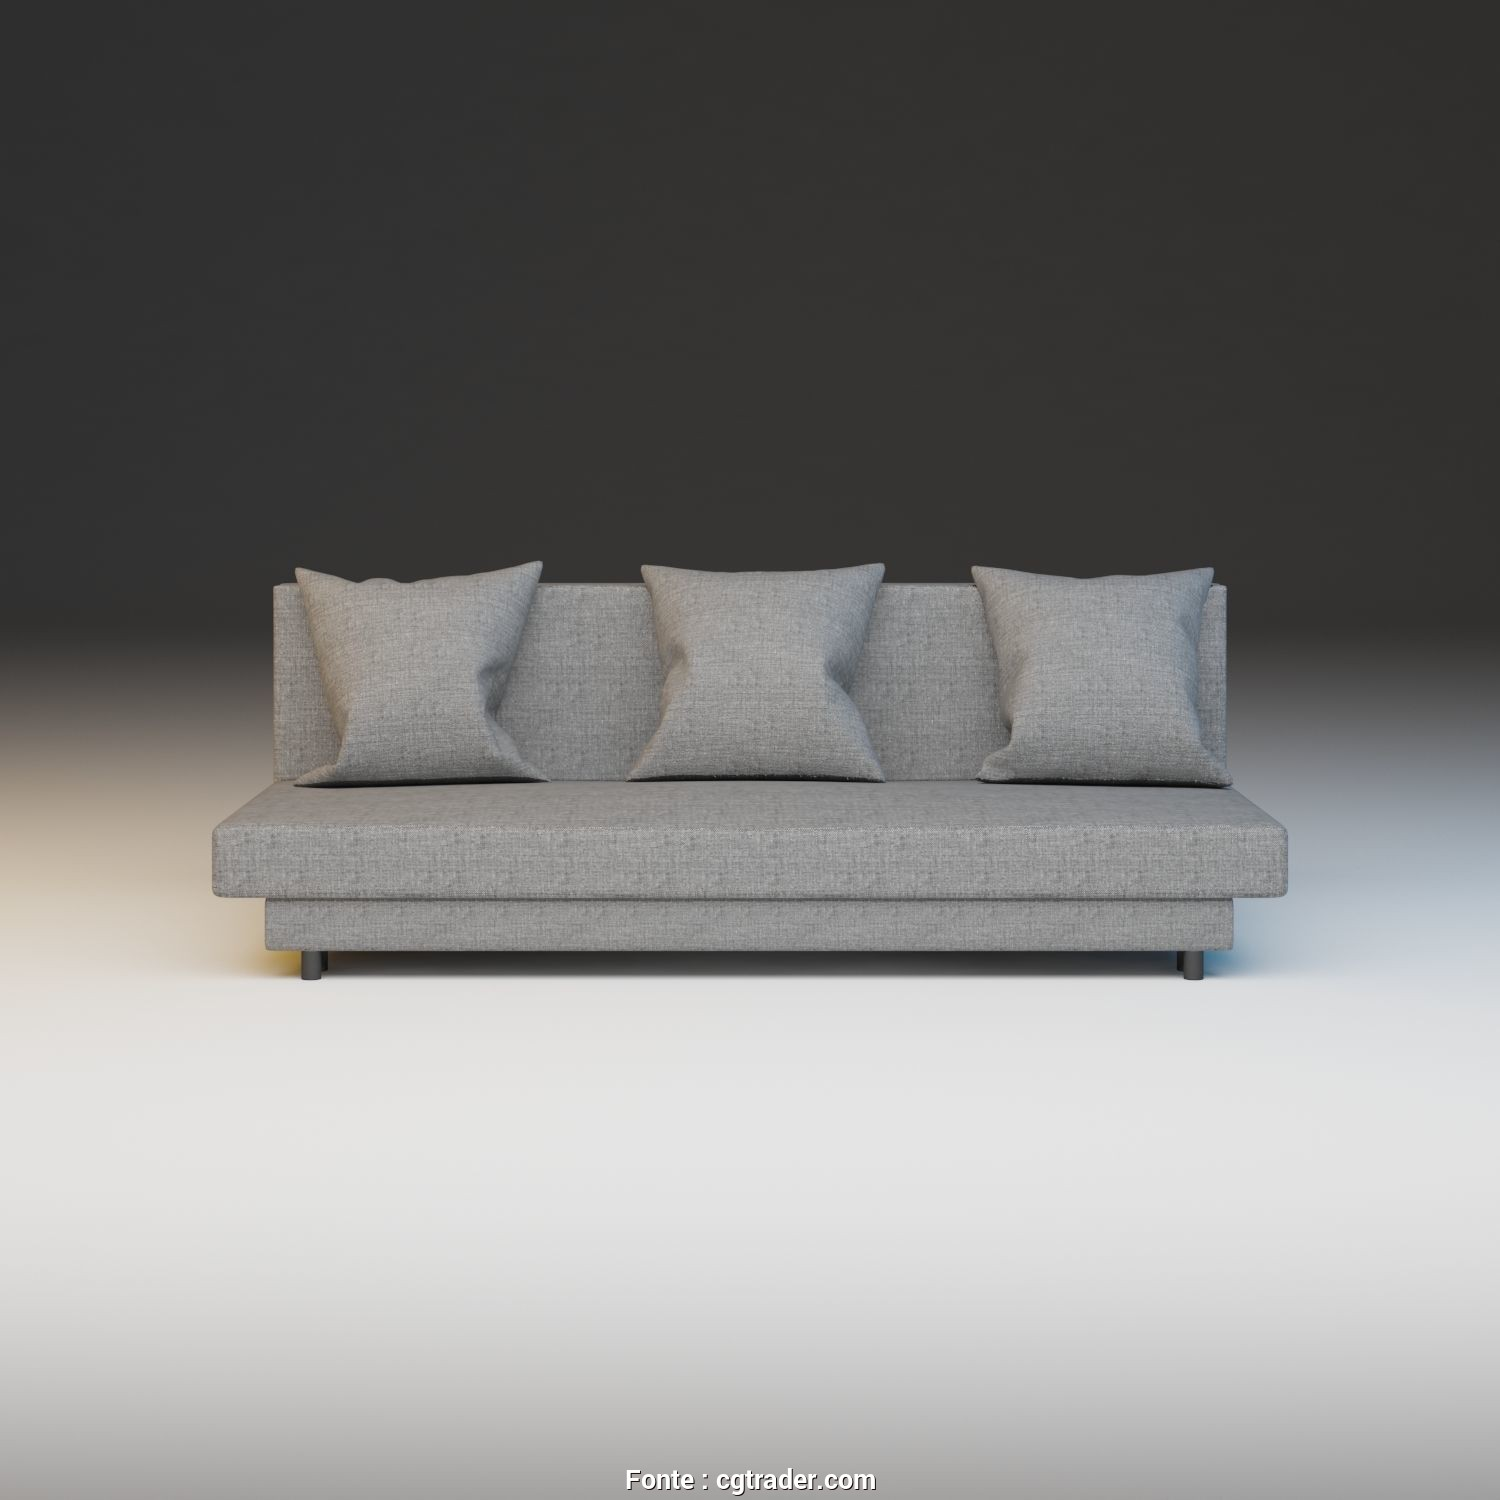 Ikea Asarum Sofa, Review, Originale ... Ikea, Asarum Sofa 3D Model, Obj, 3Ds, 3